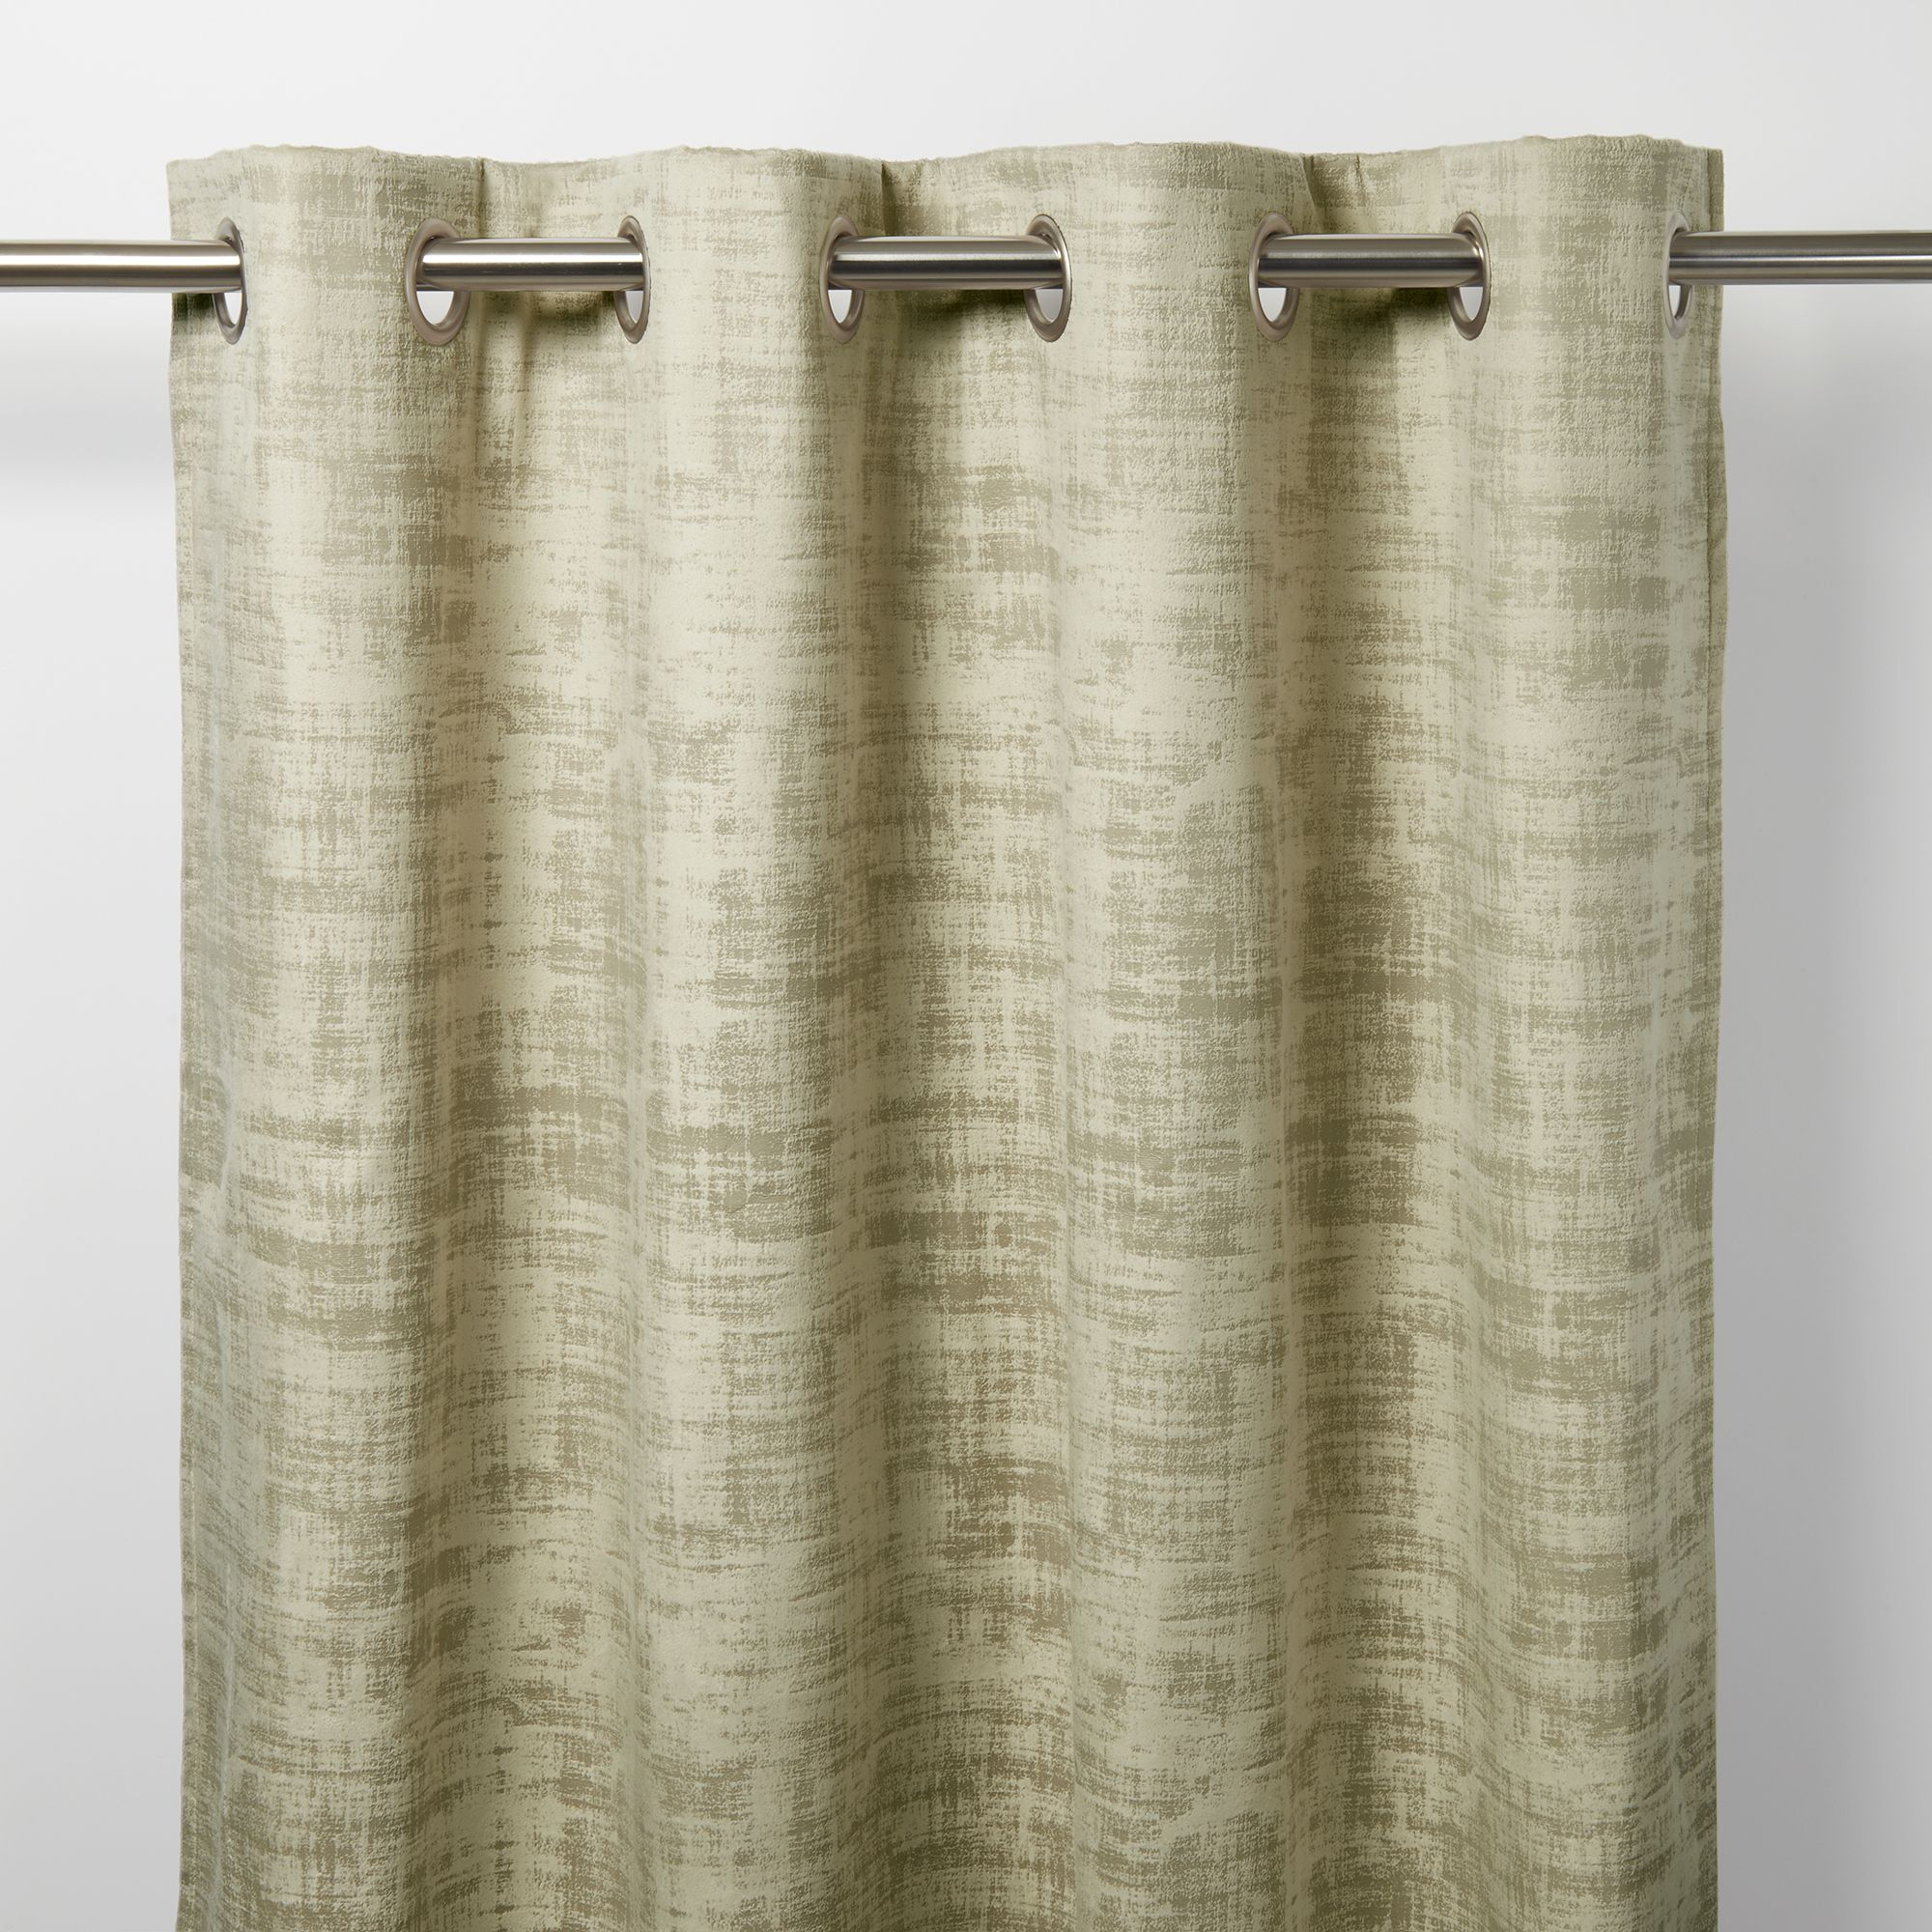 Ruvor Beige Abstract Blackout Eyelet Curtain W 117cm L 137cm Single Departments Diy At B Q